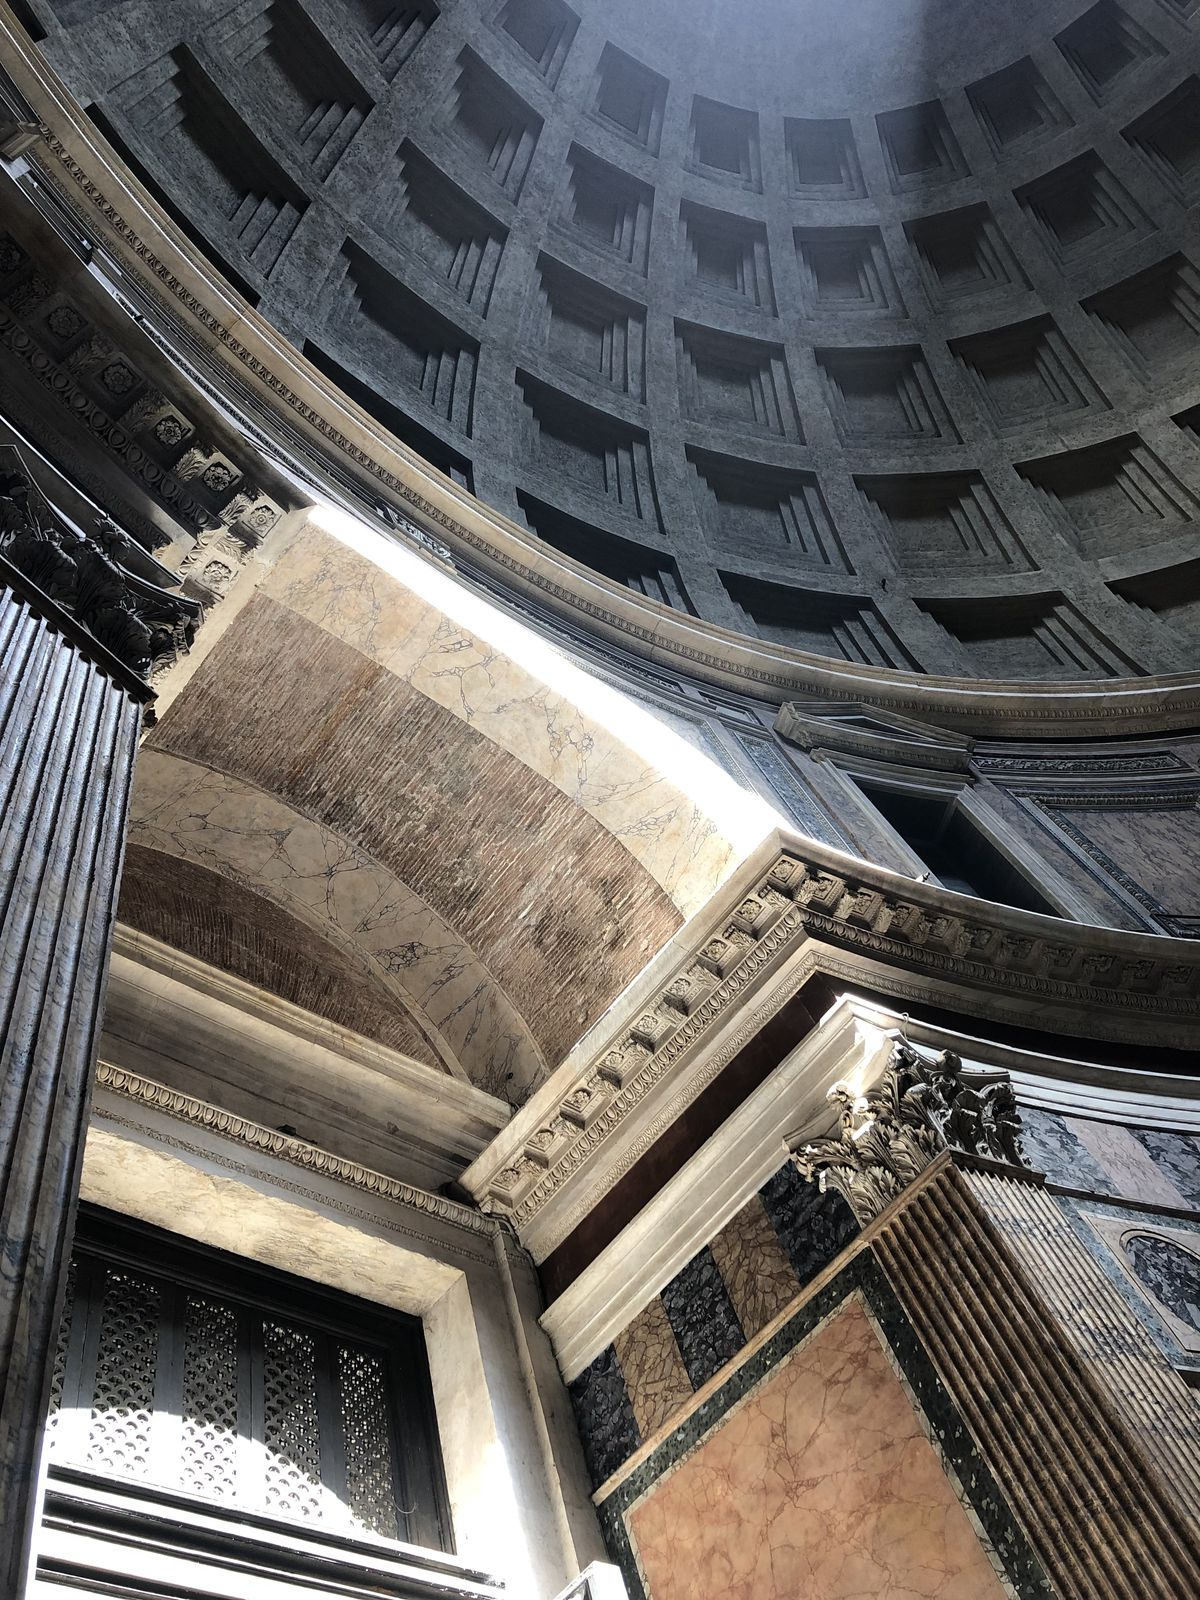 A dark, domed ceiling made of concrete.